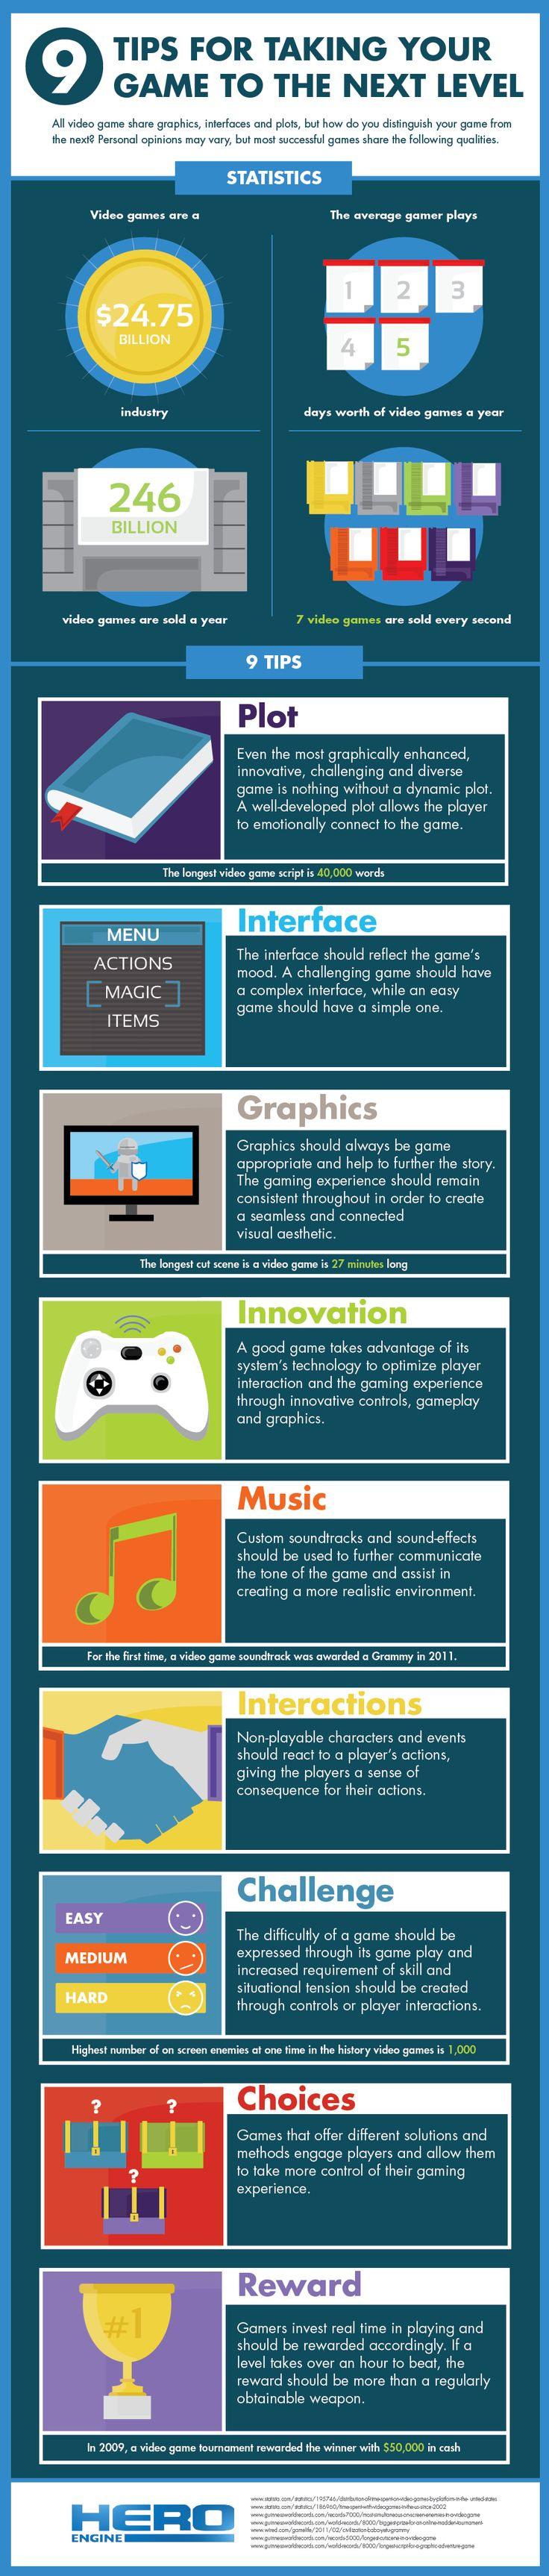 This image is The 9 tips for a better game development. This motivates me to get started by researching what I'm interested in for the games i want to create. Practice makes perfect, and having tips definitely help. This is Mastery for me because without details like these, I might find myself in a bind while creating, but it's good to have more information of the right steps to take.